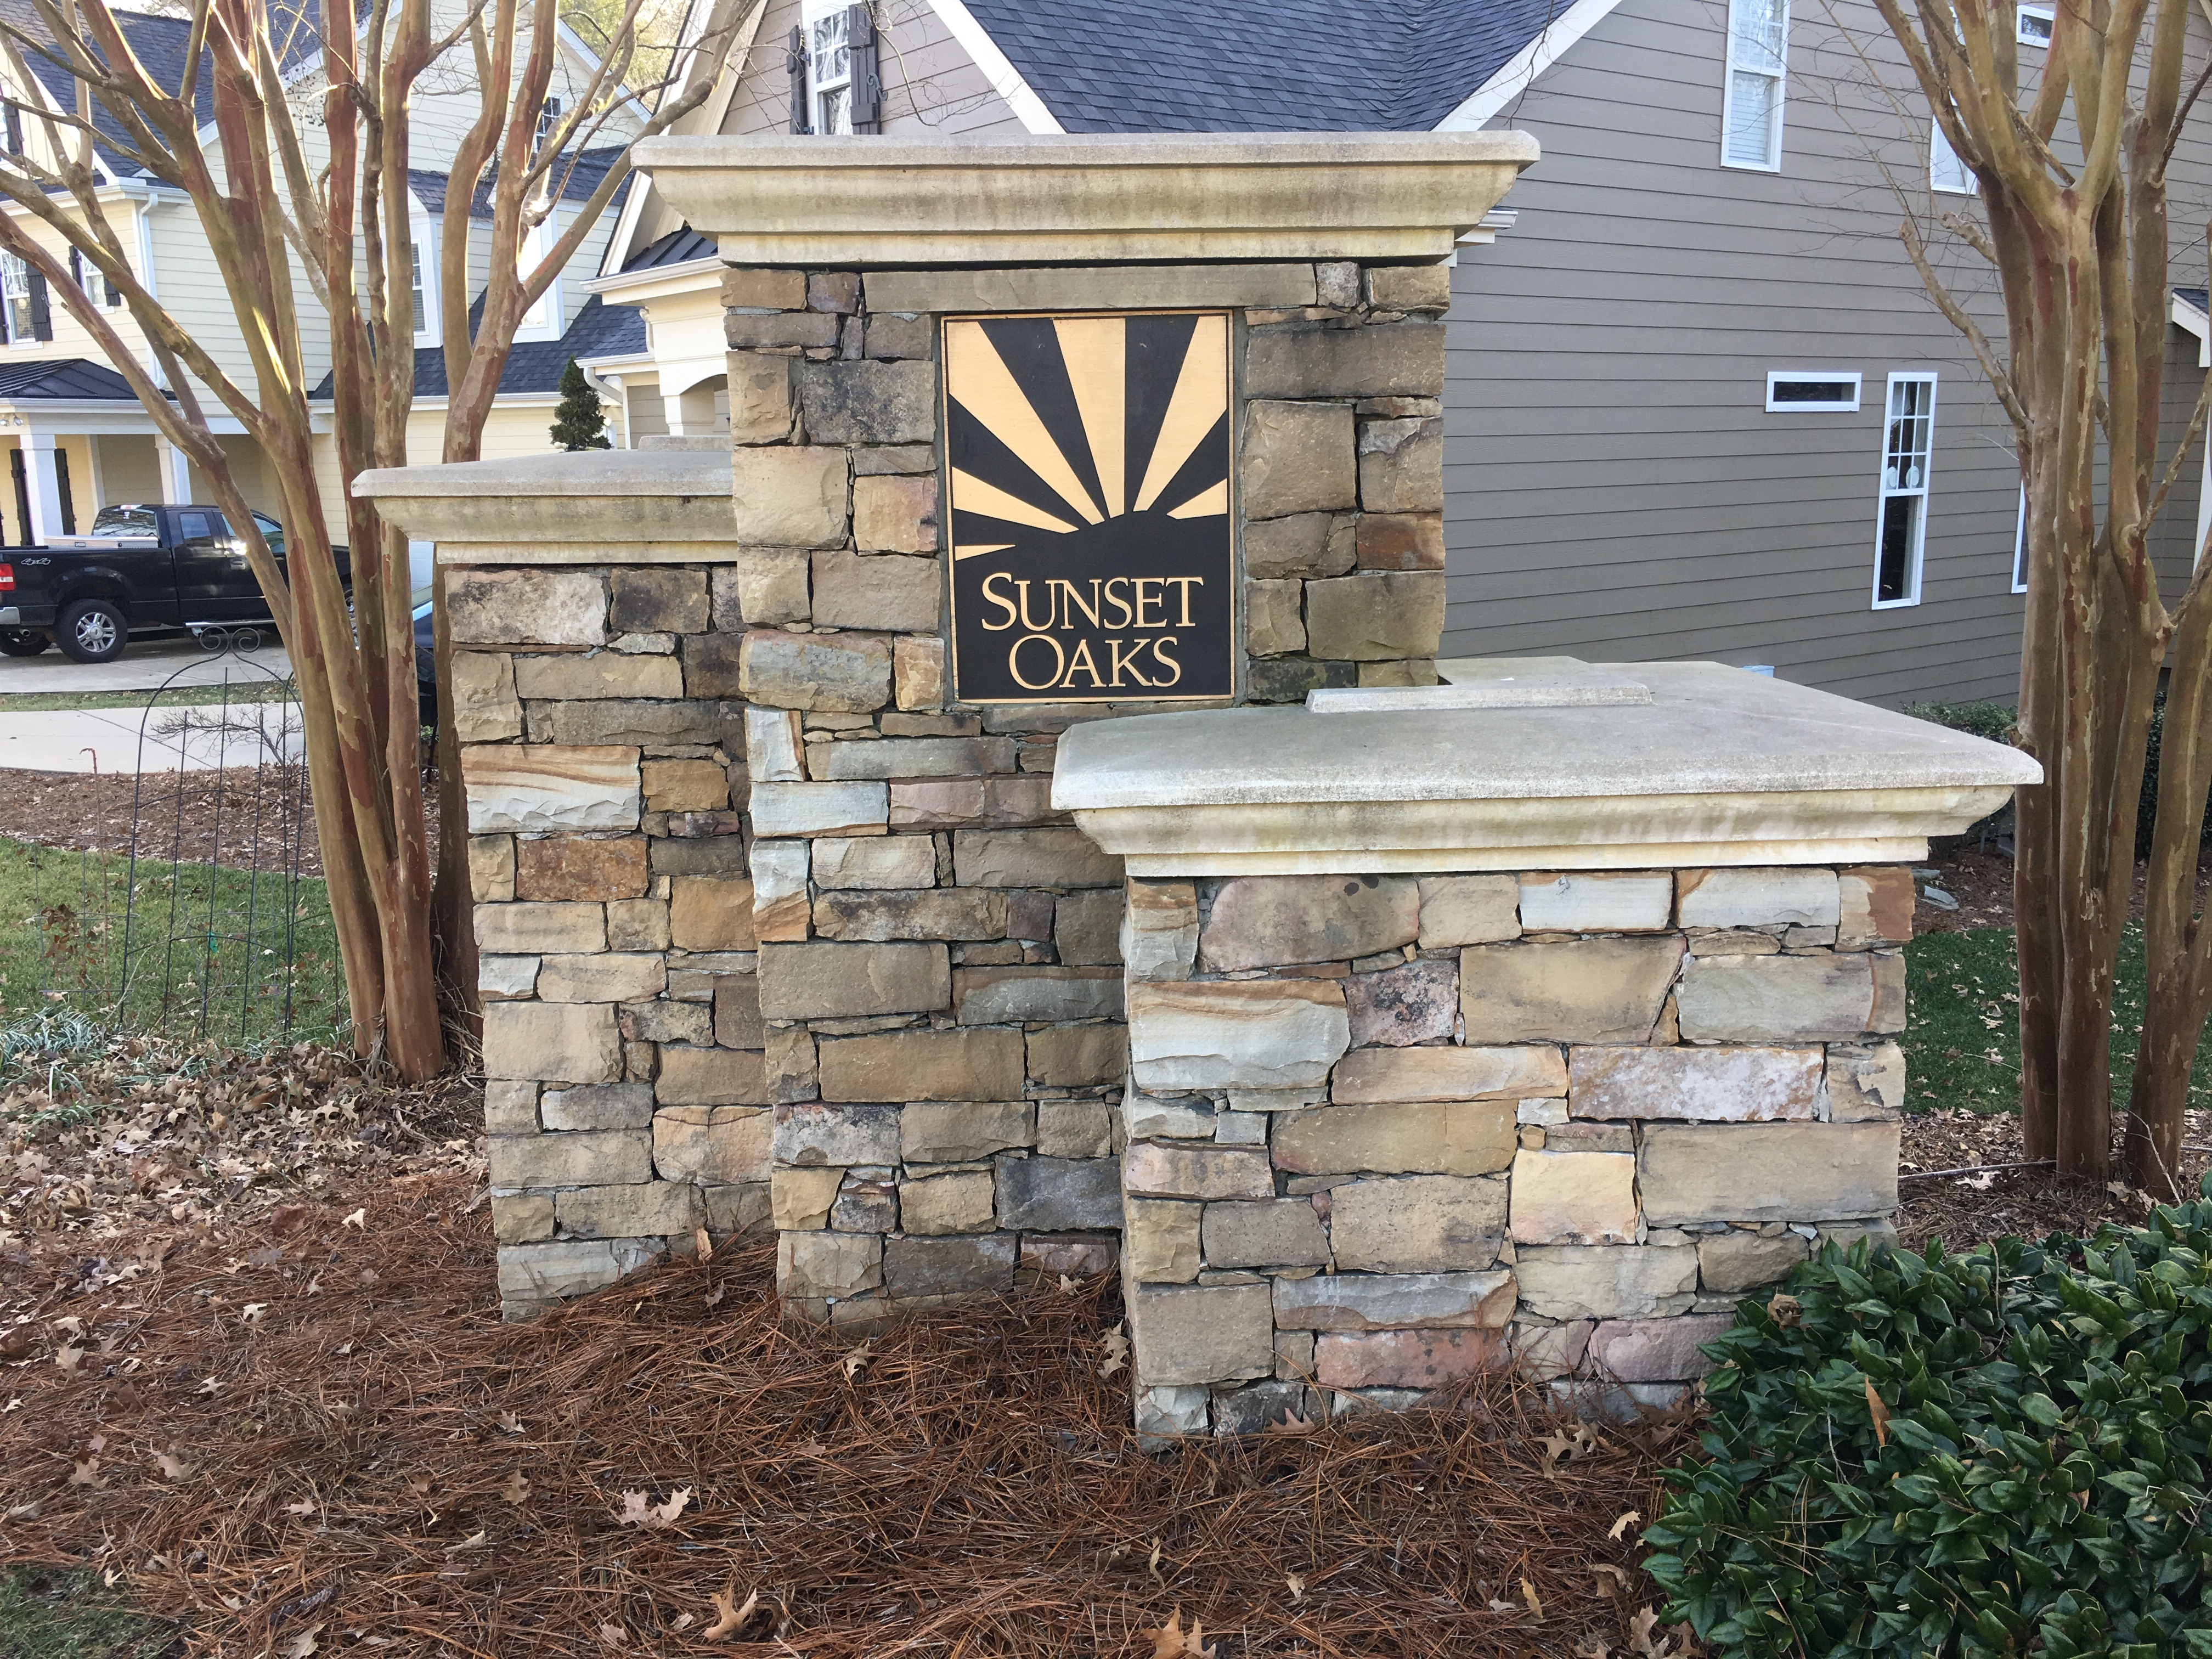 Sunset Oaks Subdivision Holly Springs